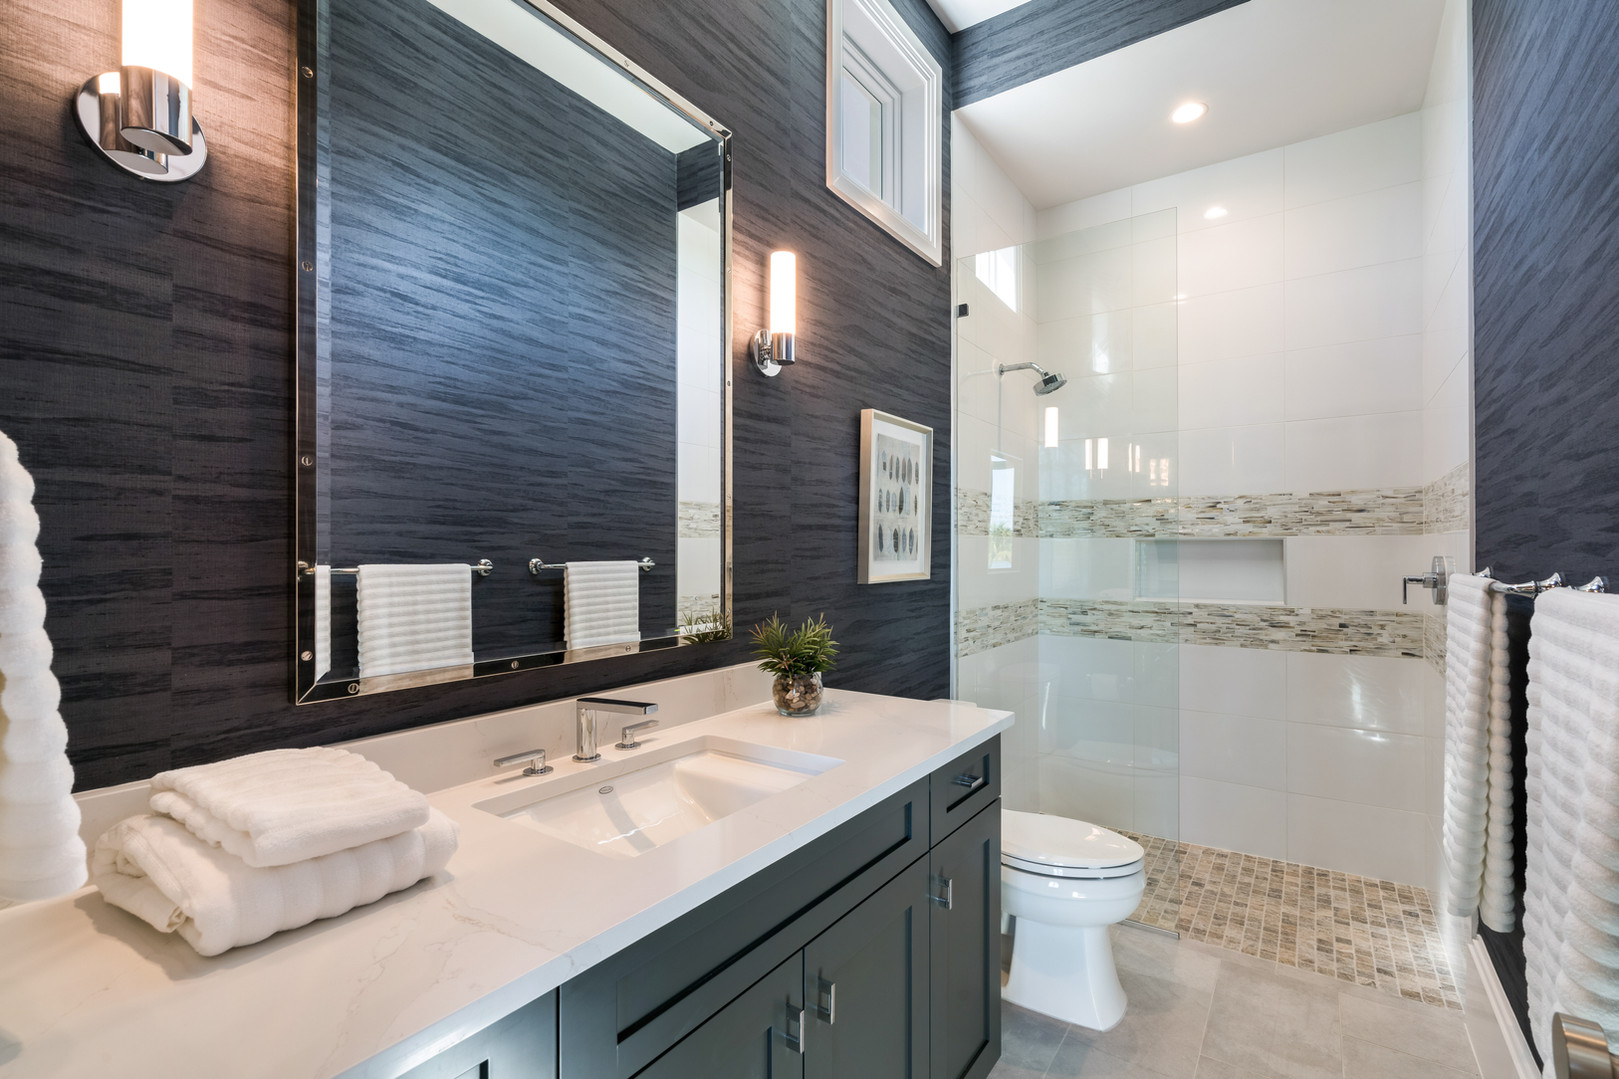 Bathroom 4-4.jpg